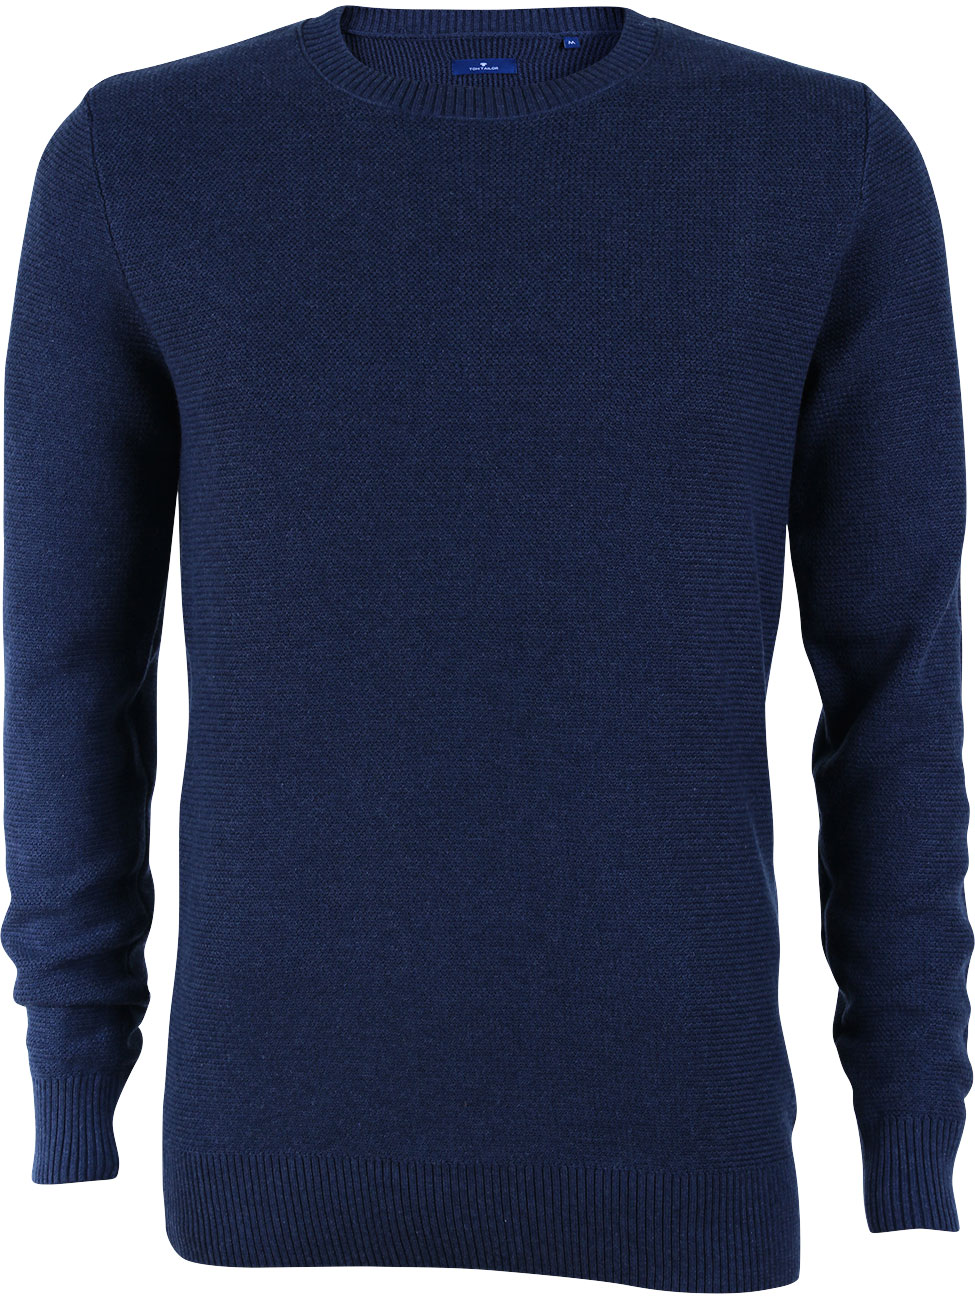 tom tailor herren pullover modern basic crew neck ebay. Black Bedroom Furniture Sets. Home Design Ideas